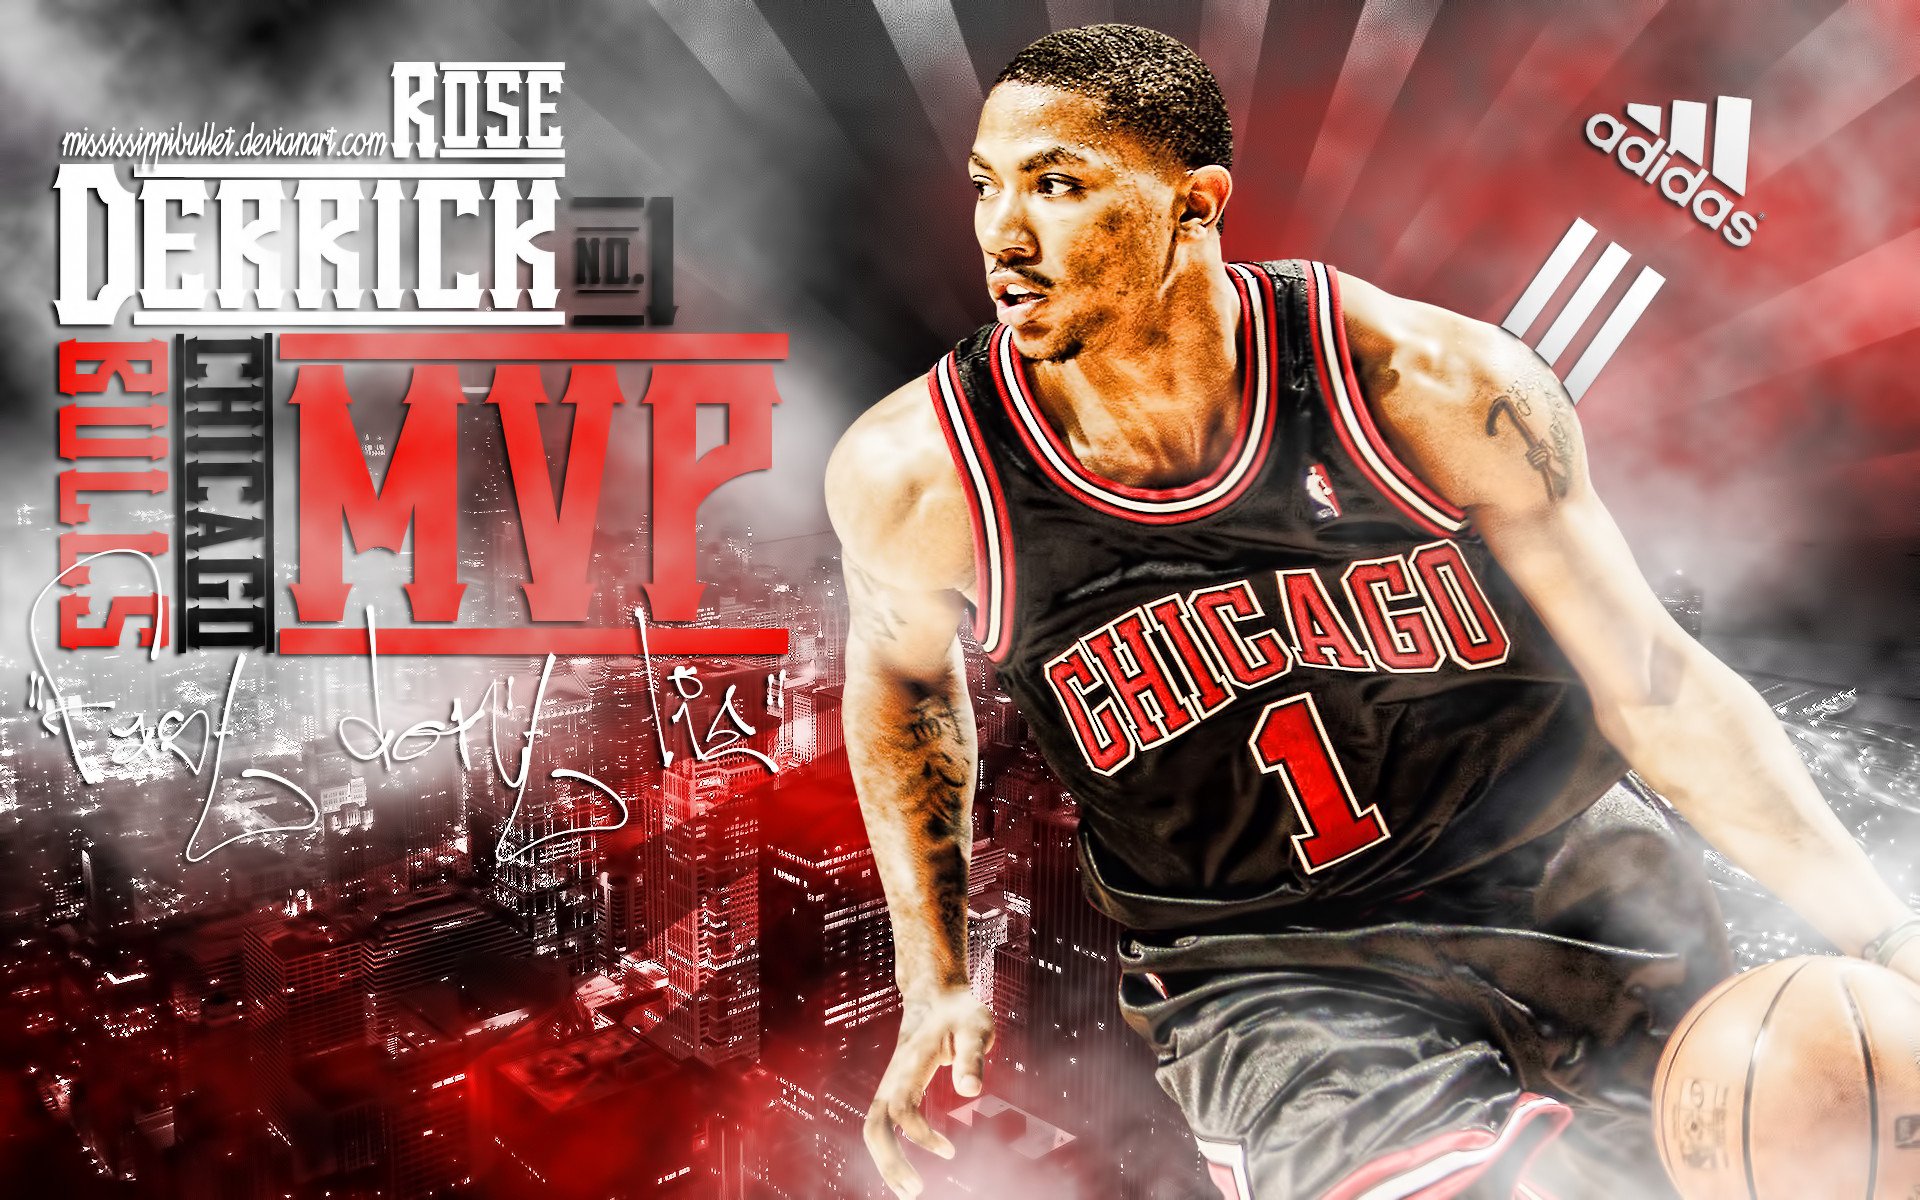 Derrick Rose Wallpaper 2012 Hd wallpaper   424901 1920x1200